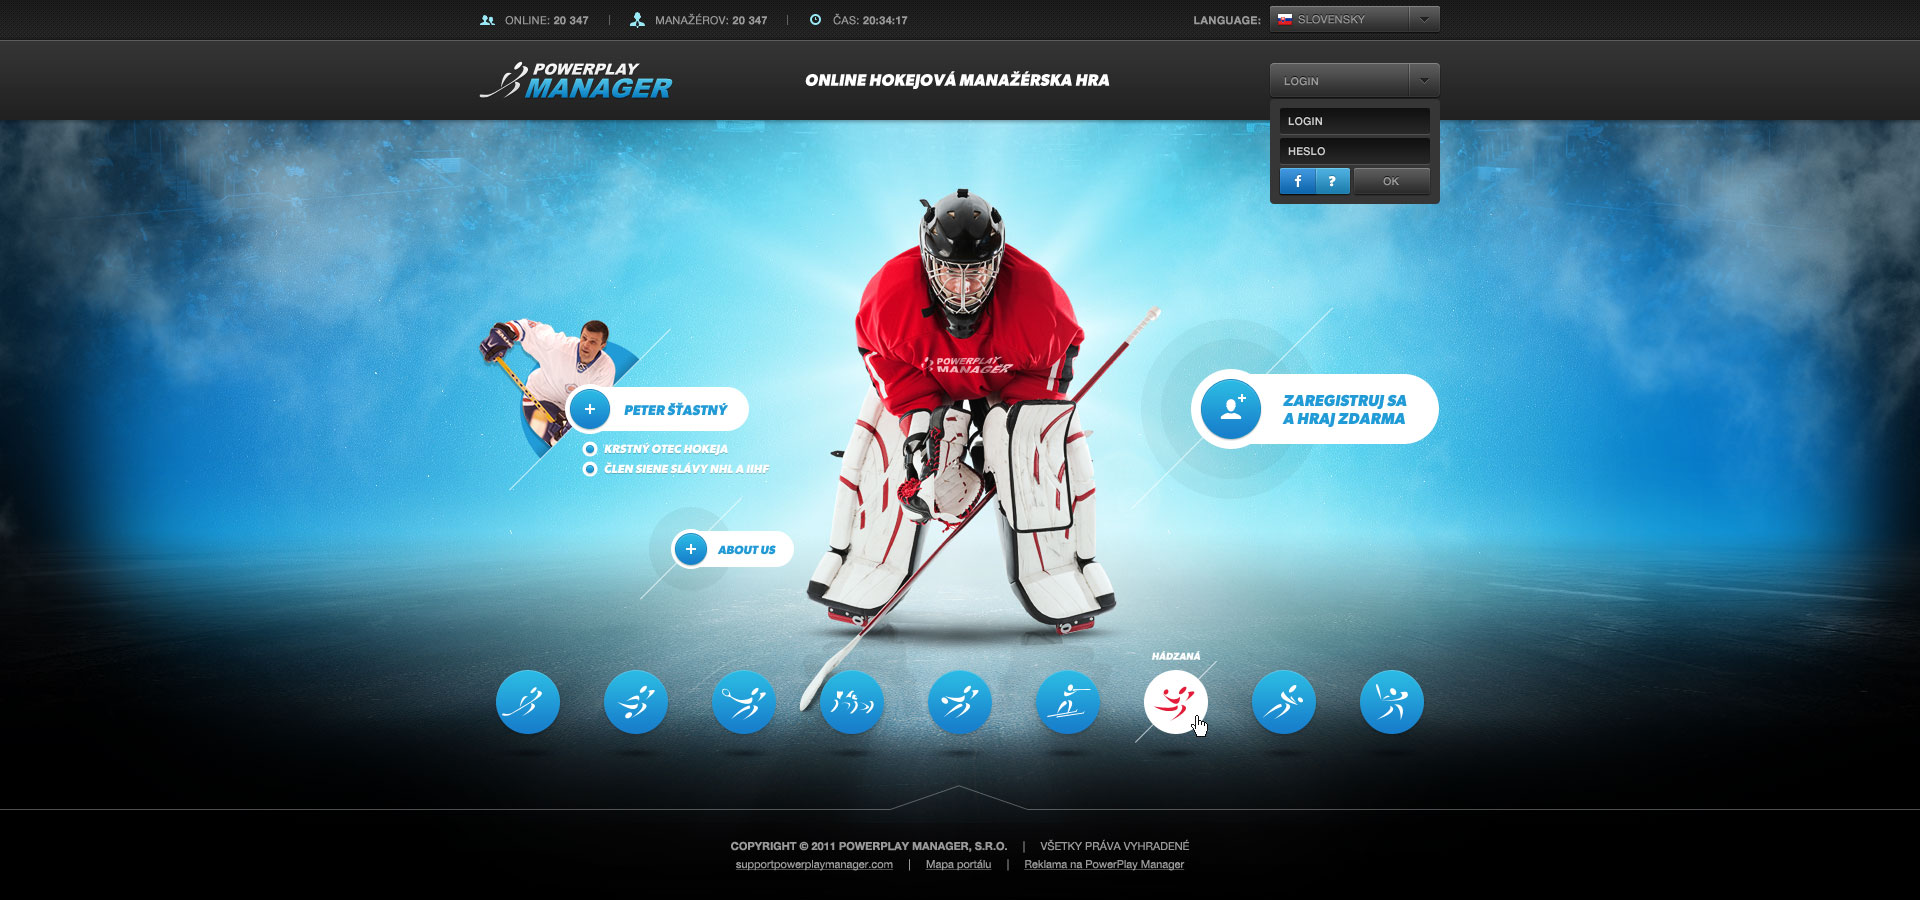 New version of hockey welcome page